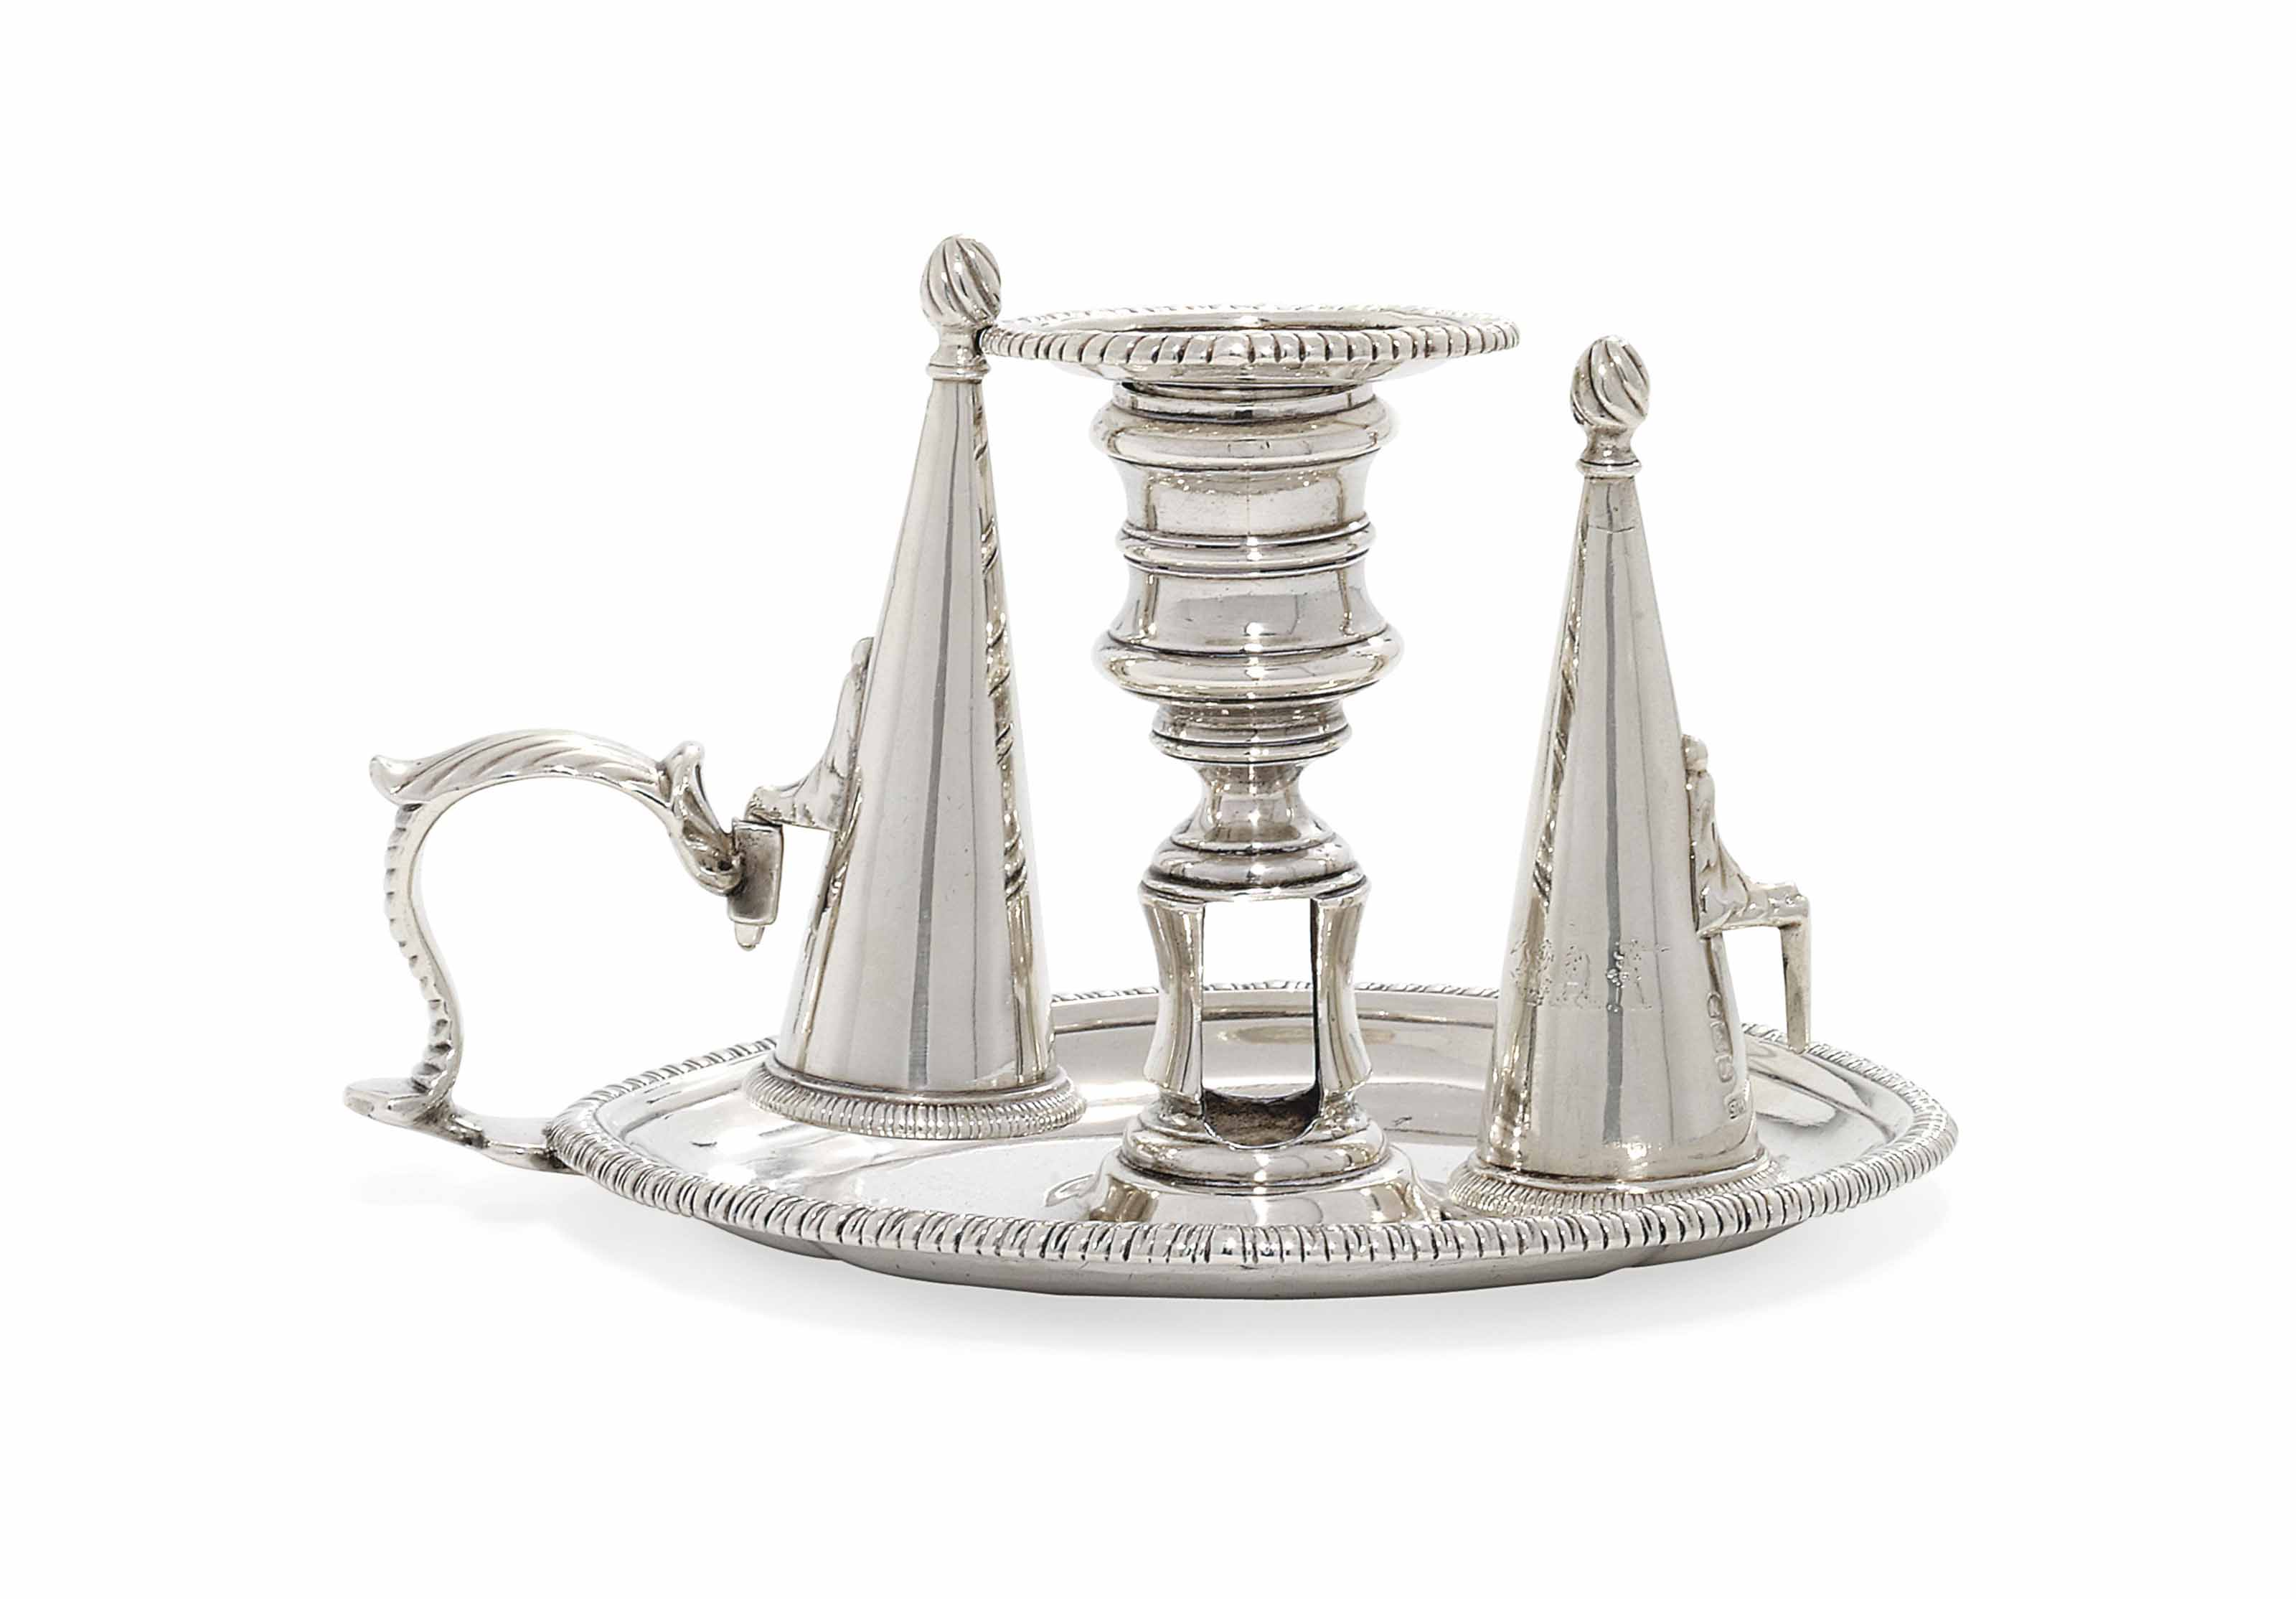 A GEORGE III SILVER CHAMBER-CANDLESTICK